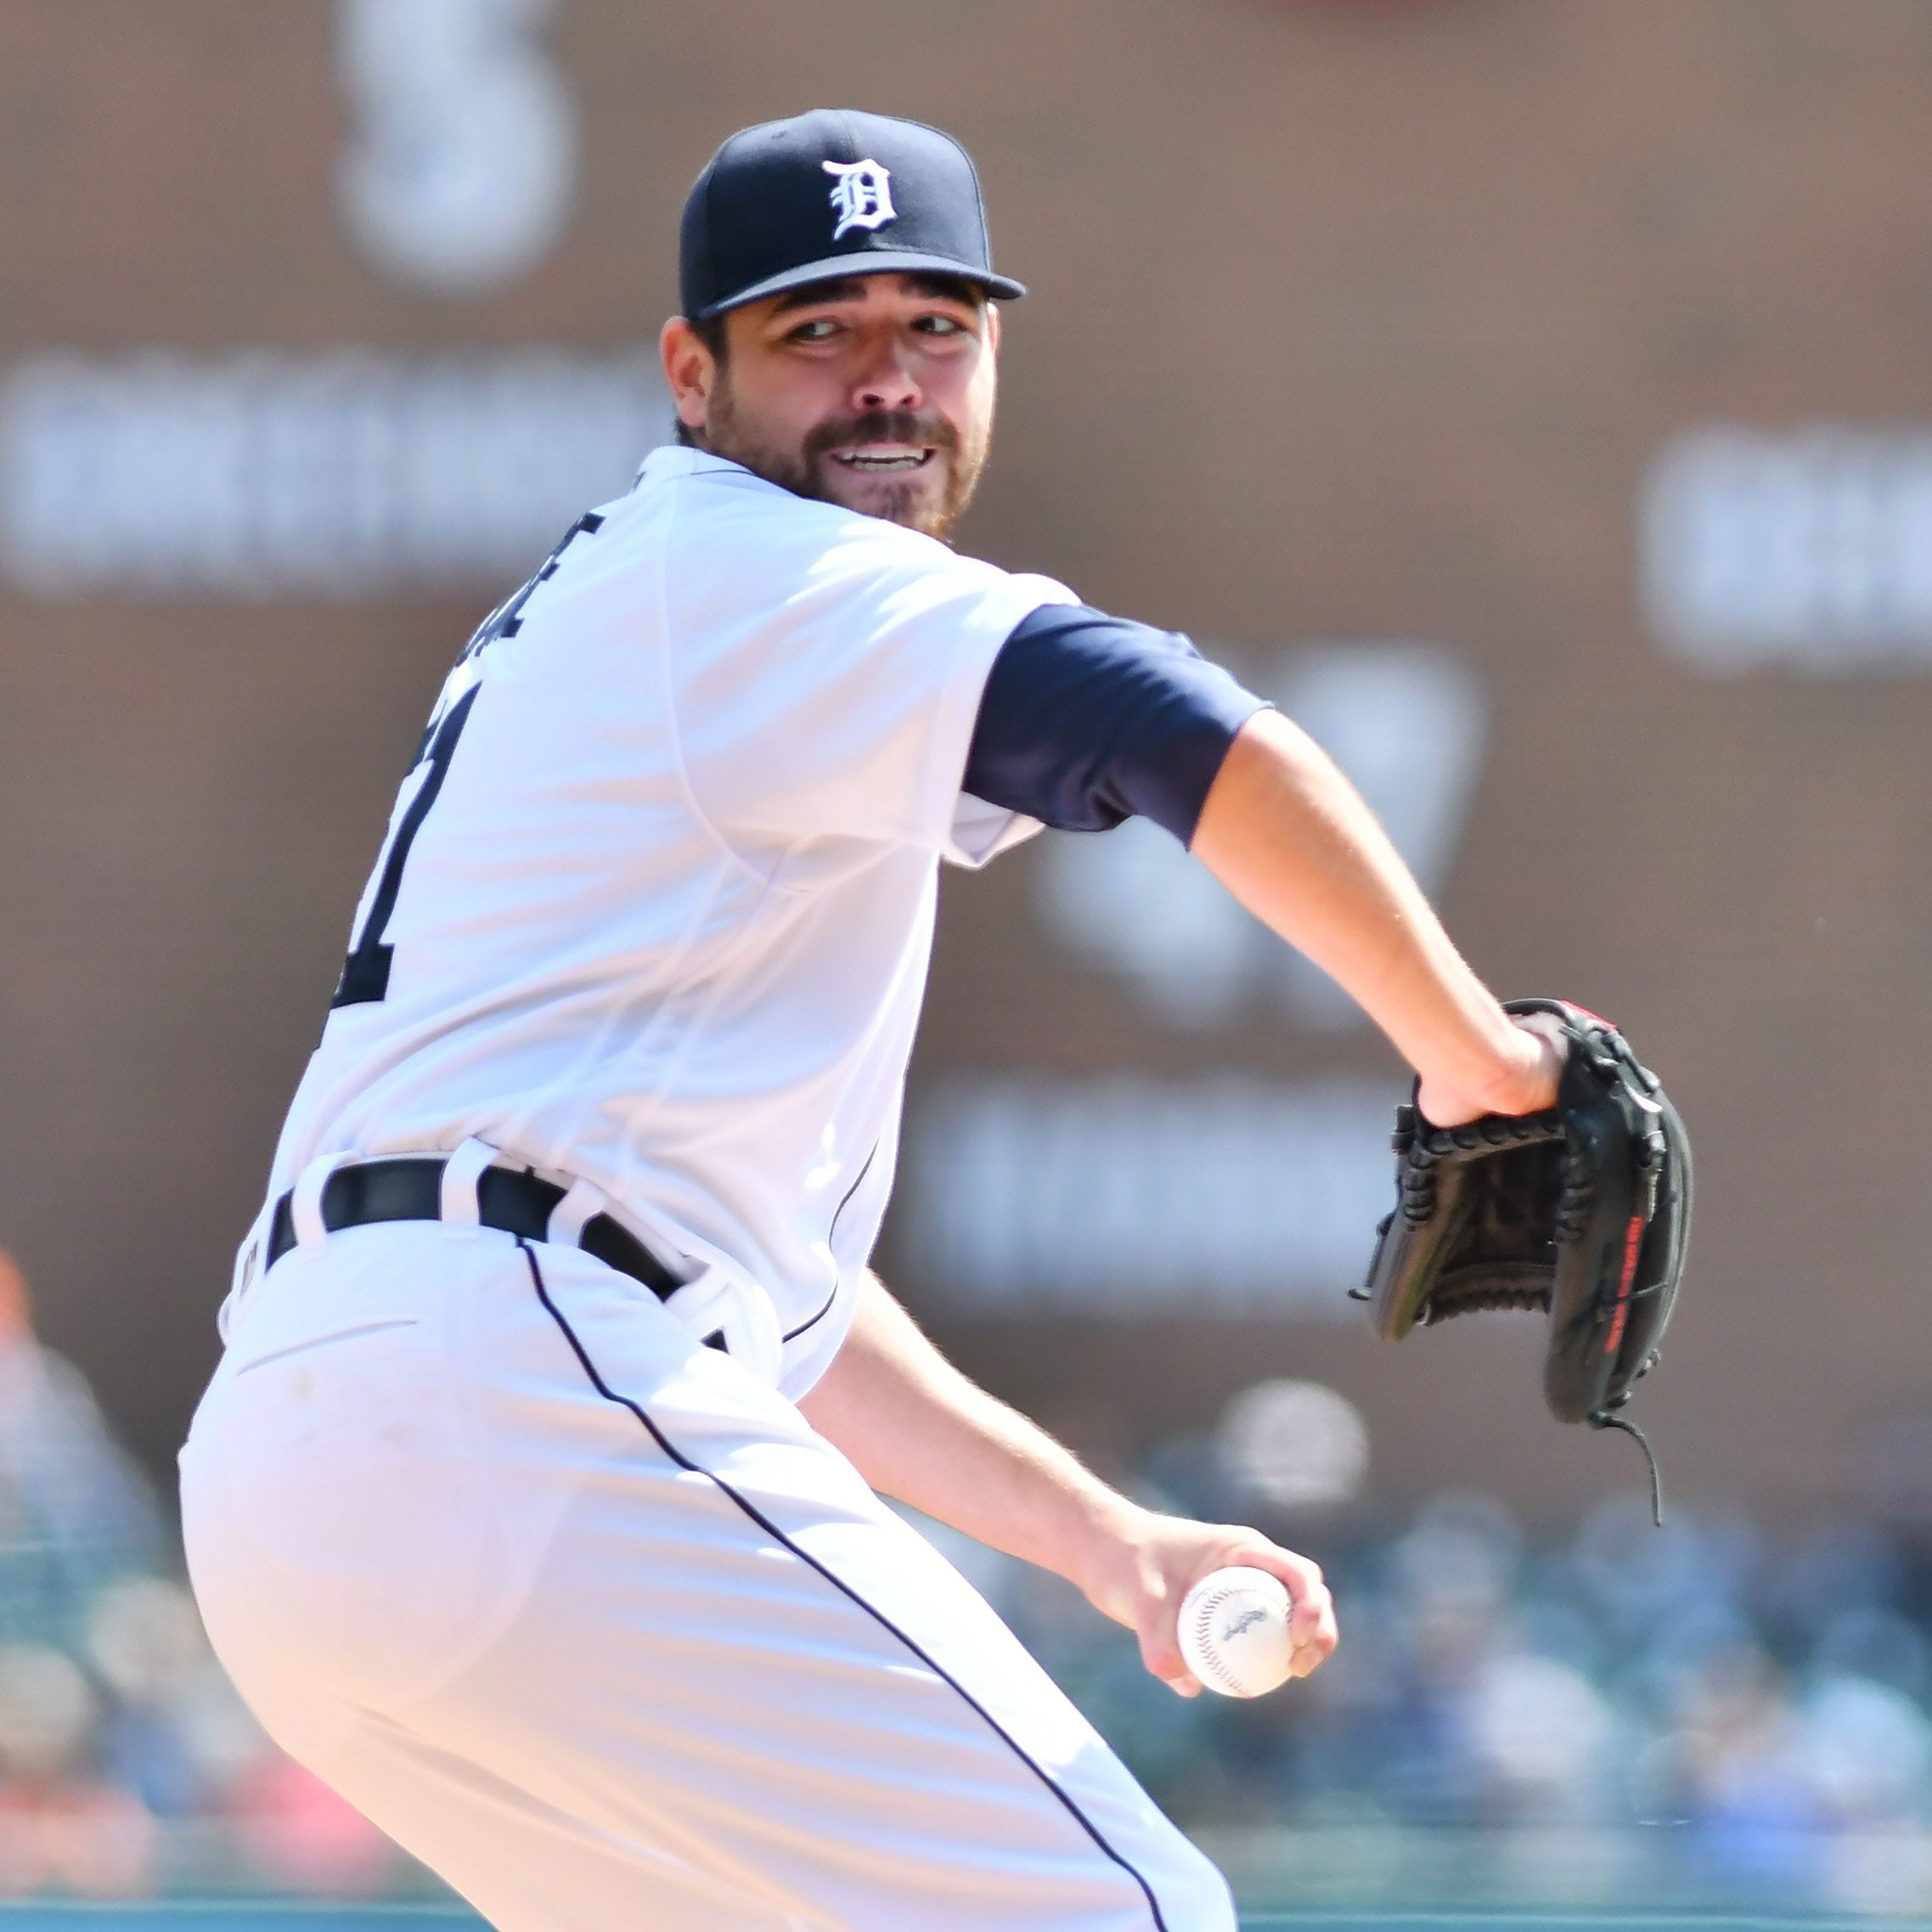 Tigers' Matt Moore will miss the rest of season after knee surgery